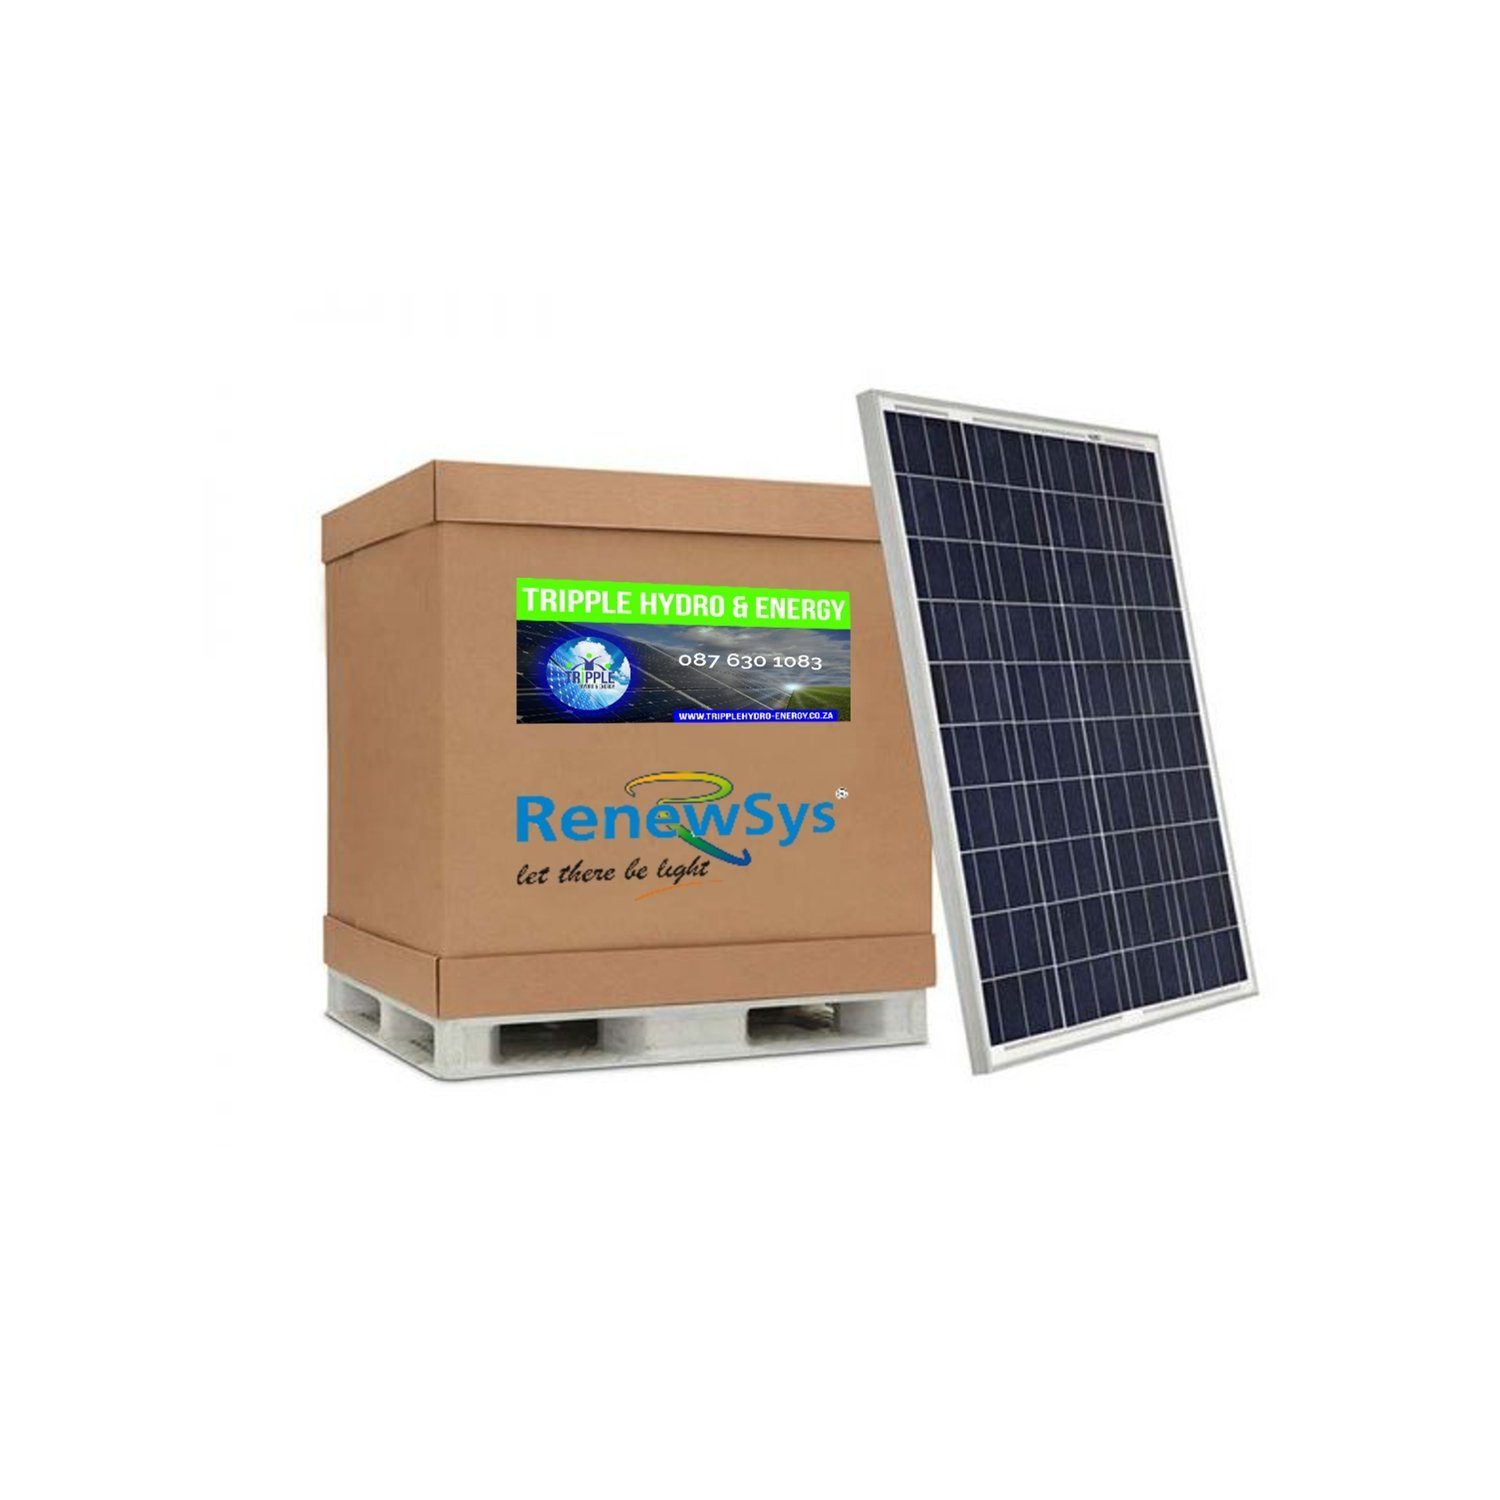 Renewsys 100 Watt Solar Panel (Pallet of 28) (R7.64/Watt excl Vat)